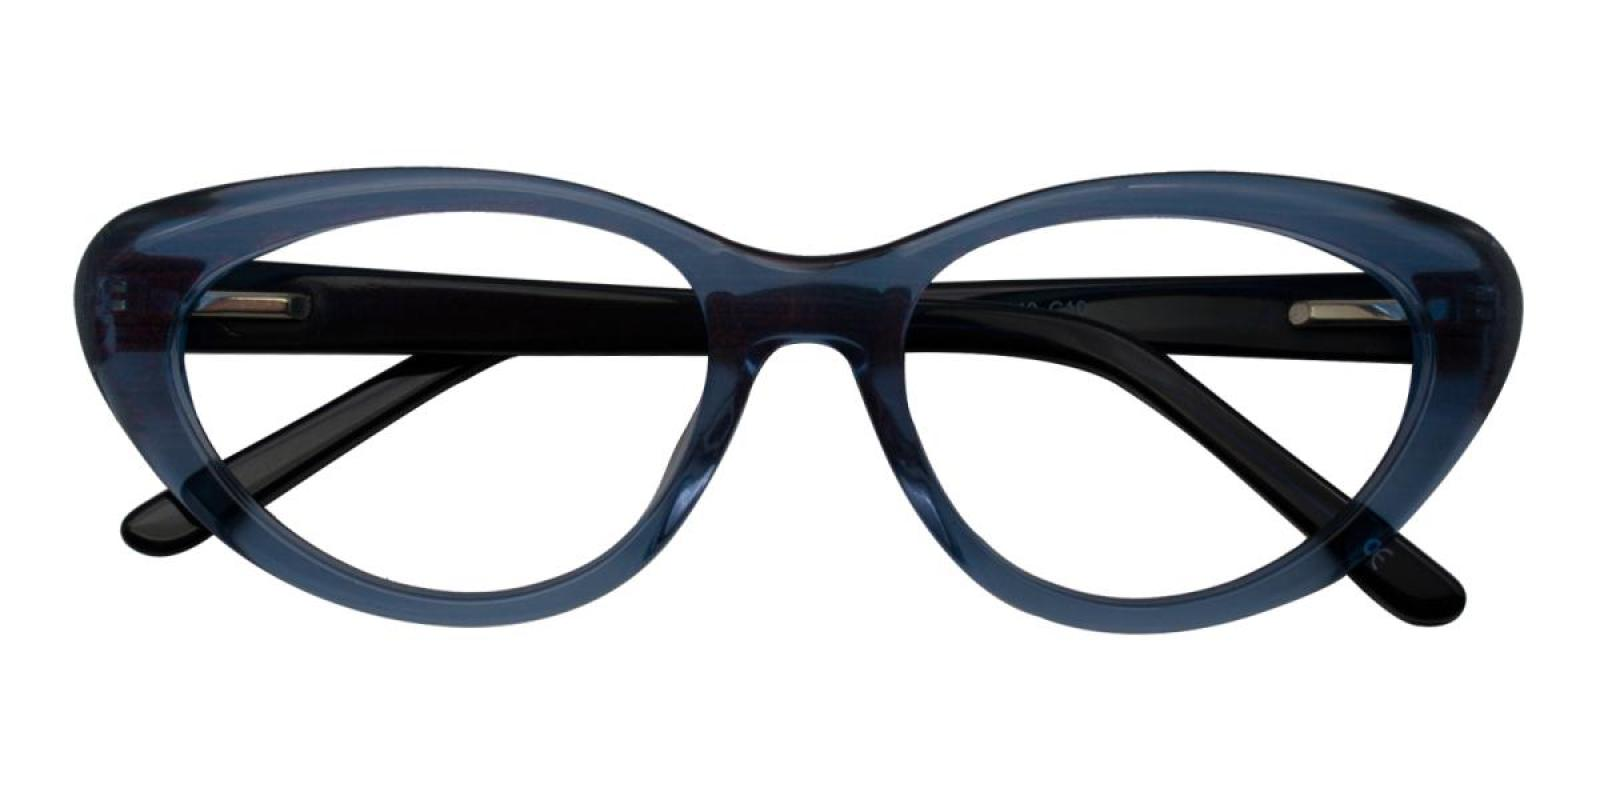 Jeanne-Blue-Cat-Acetate-Eyeglasses-detail